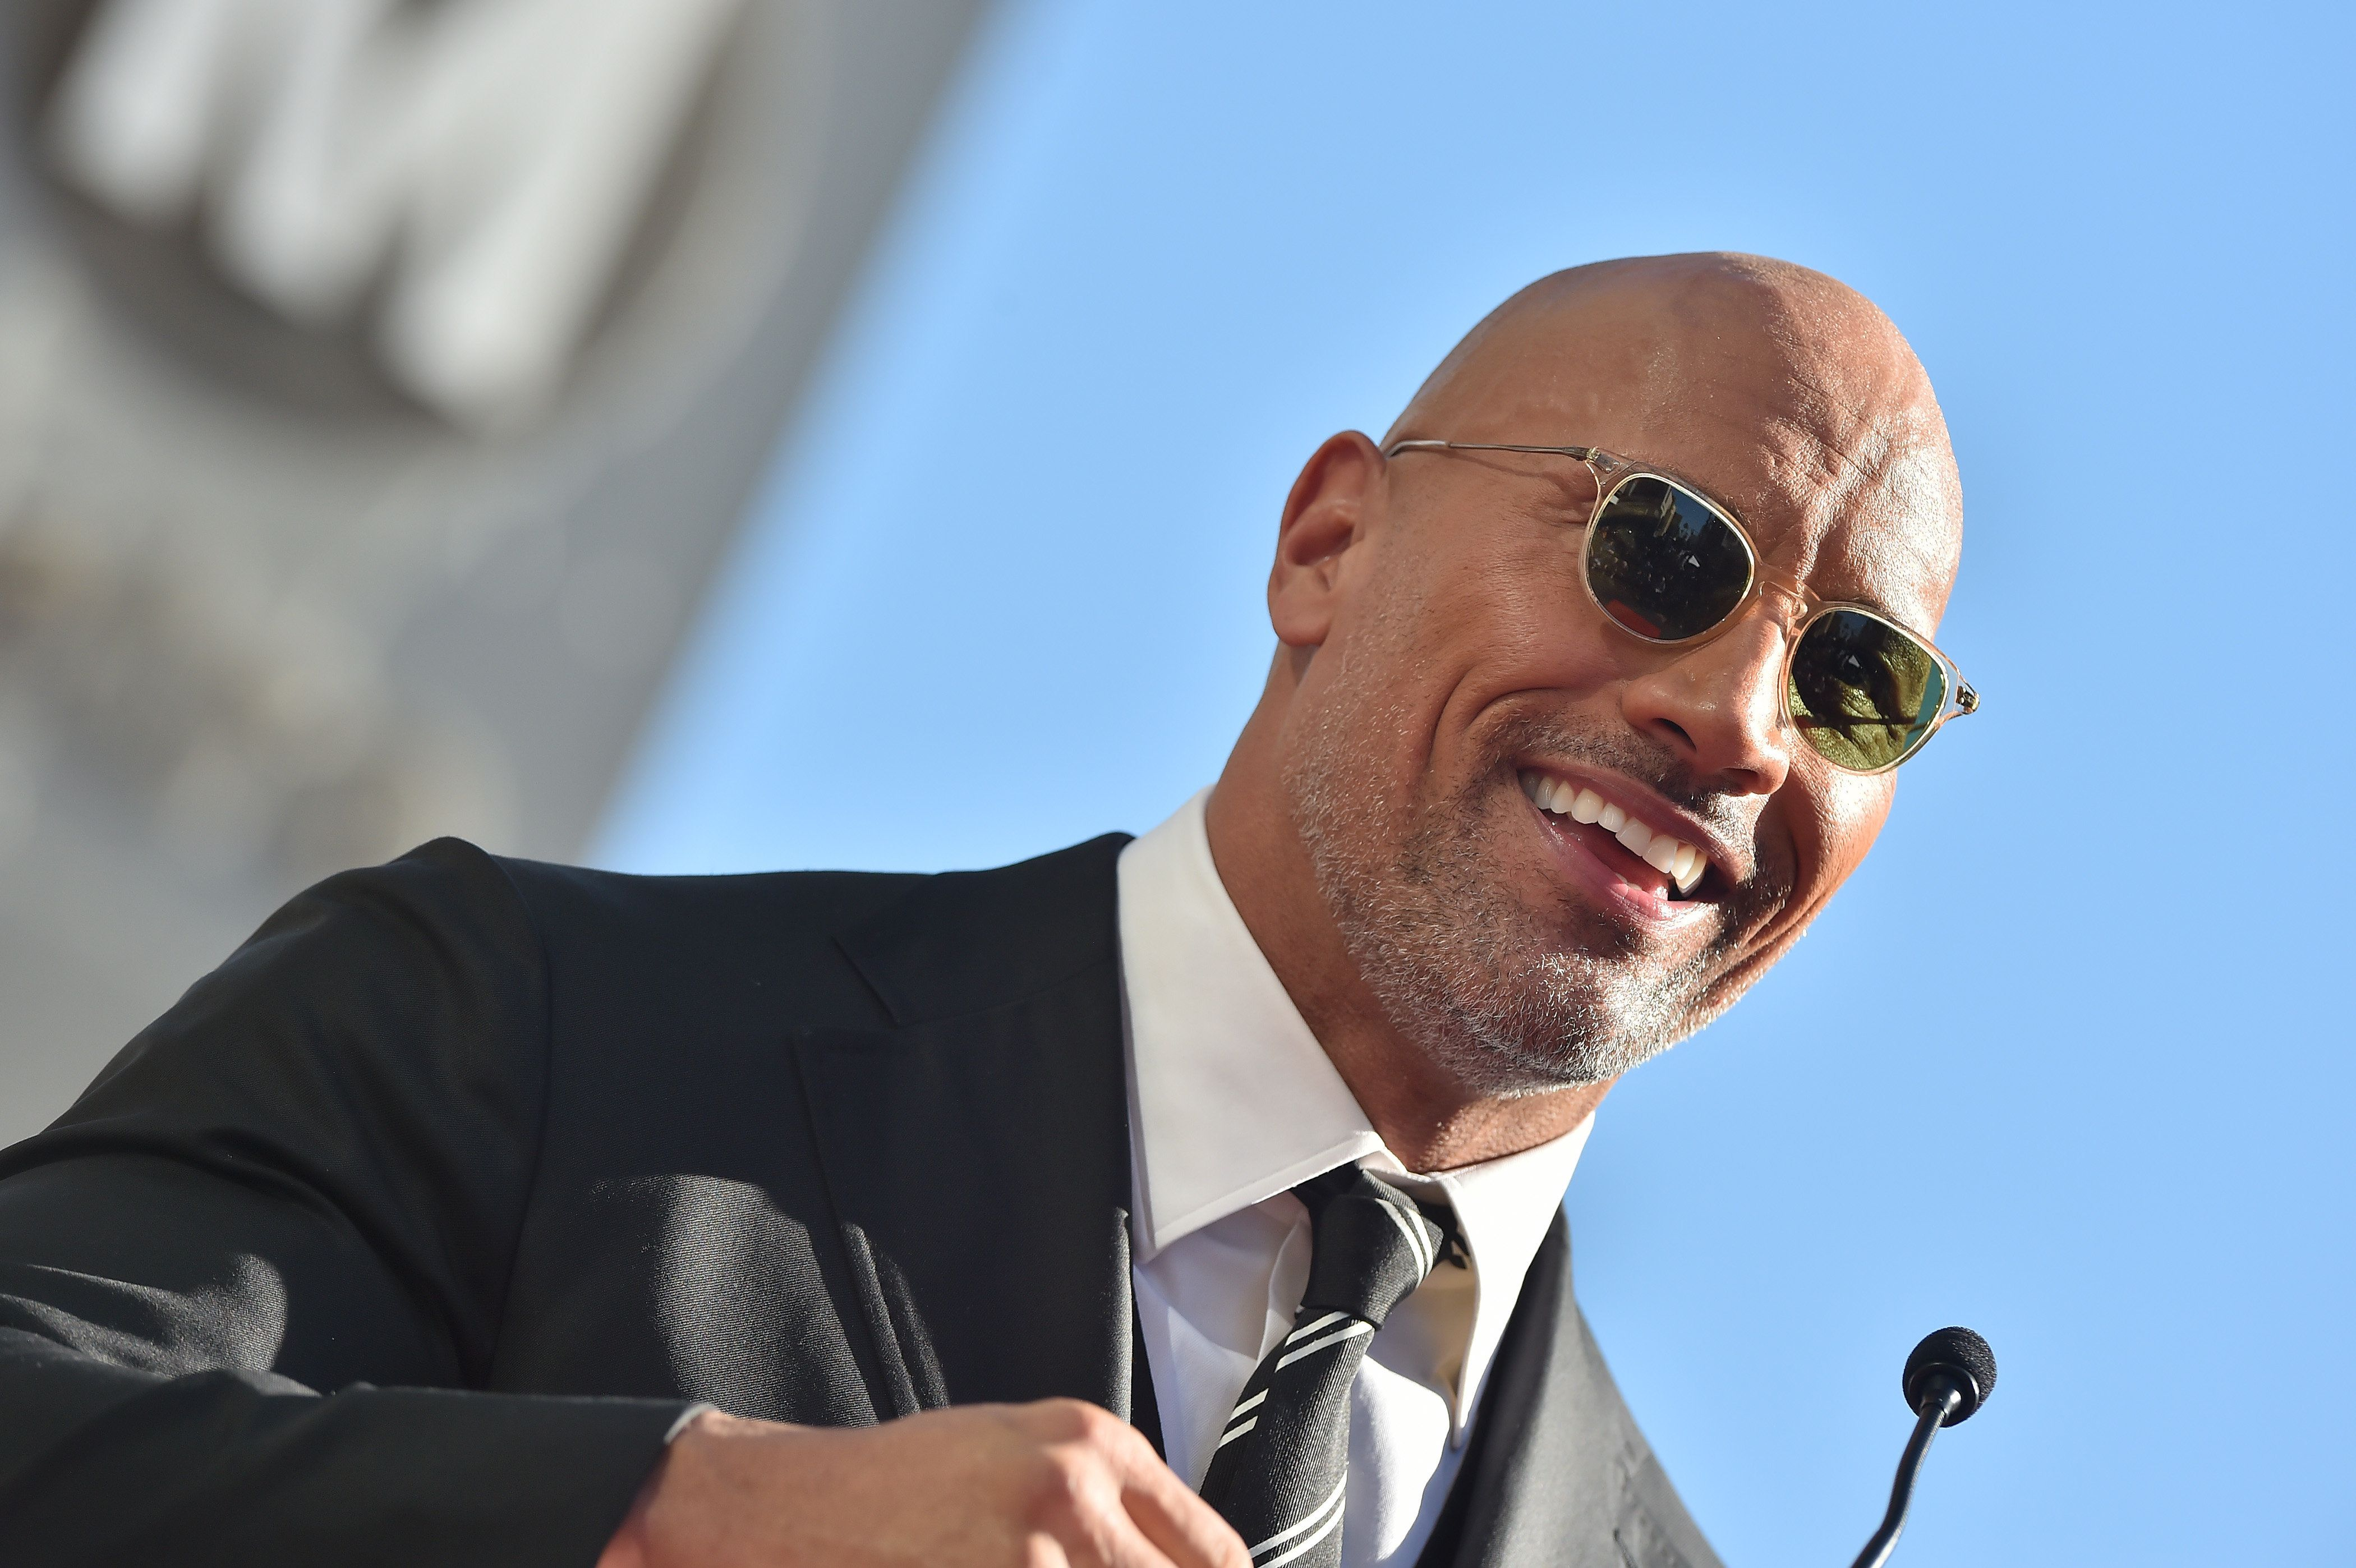 Men Affected By Depression Share What Dwayne 'The Rock' Johnson's Comments Mean To